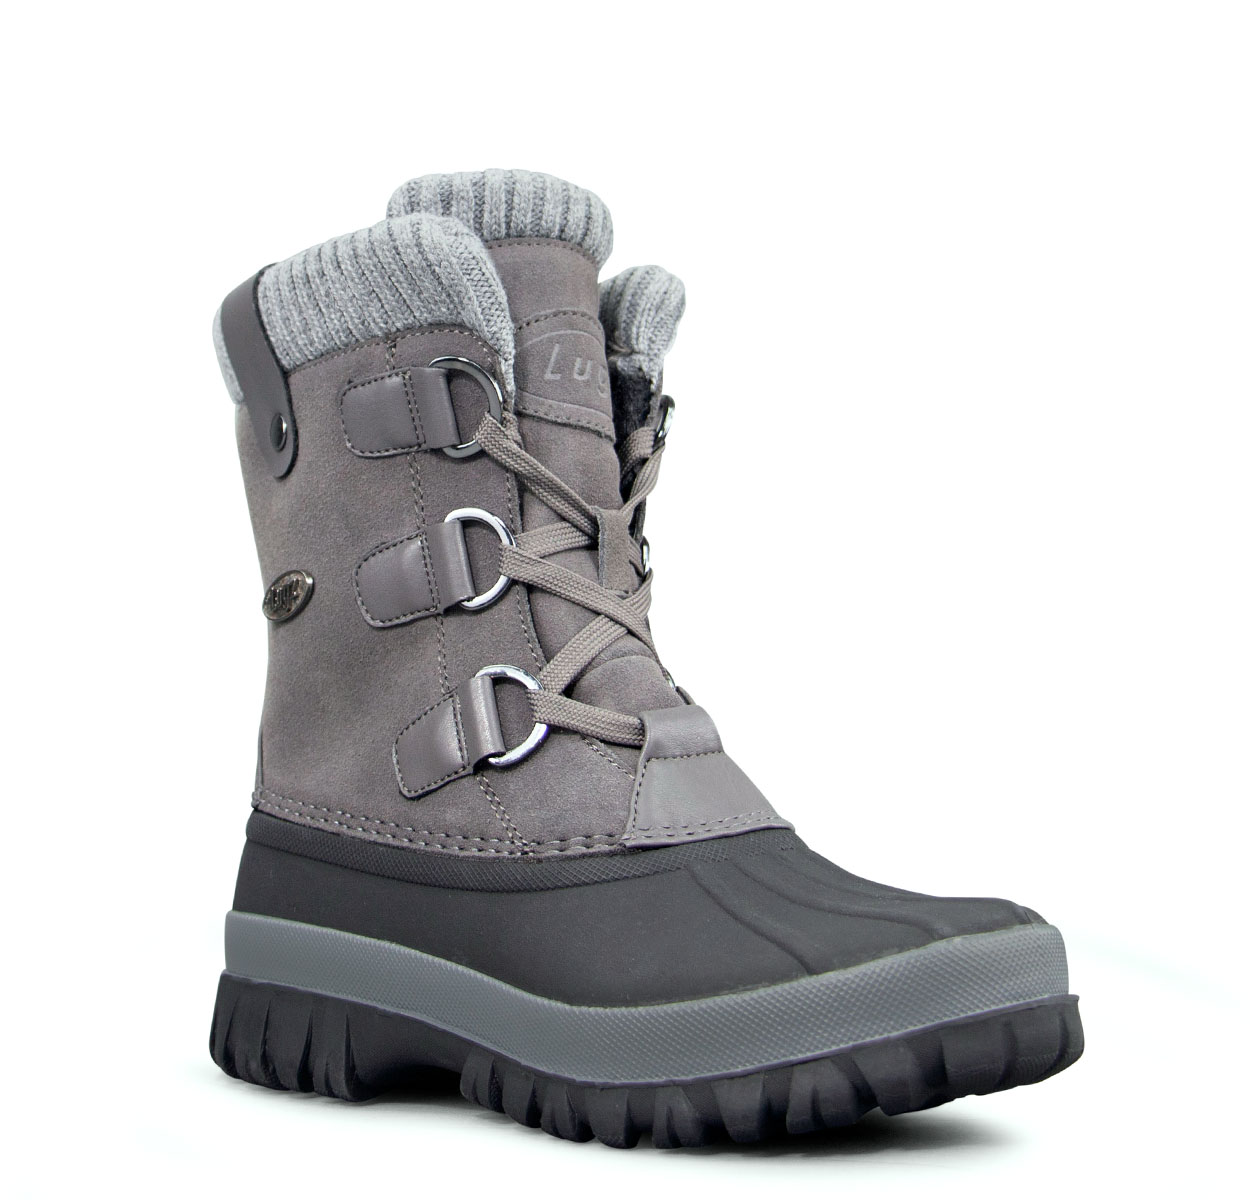 Women's Stormy 6-Inch Boot (Choose Your Color: DK GREY/GREY/BLACK, Choose Your Size: 7.0)